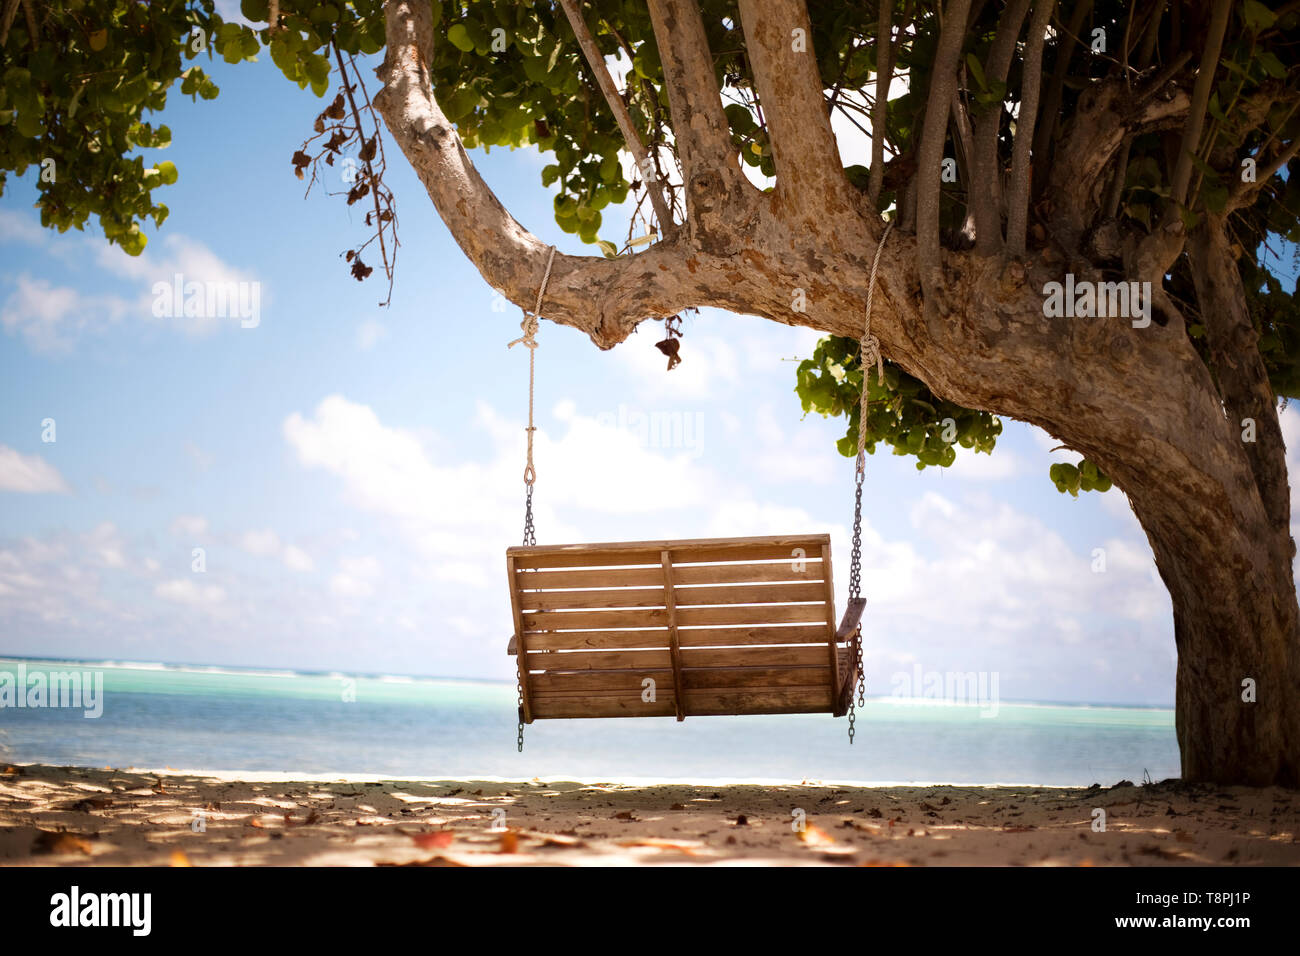 Remarkable Wooden Bench Swing Hangs From A Tree Facing The Ocean Stock Caraccident5 Cool Chair Designs And Ideas Caraccident5Info